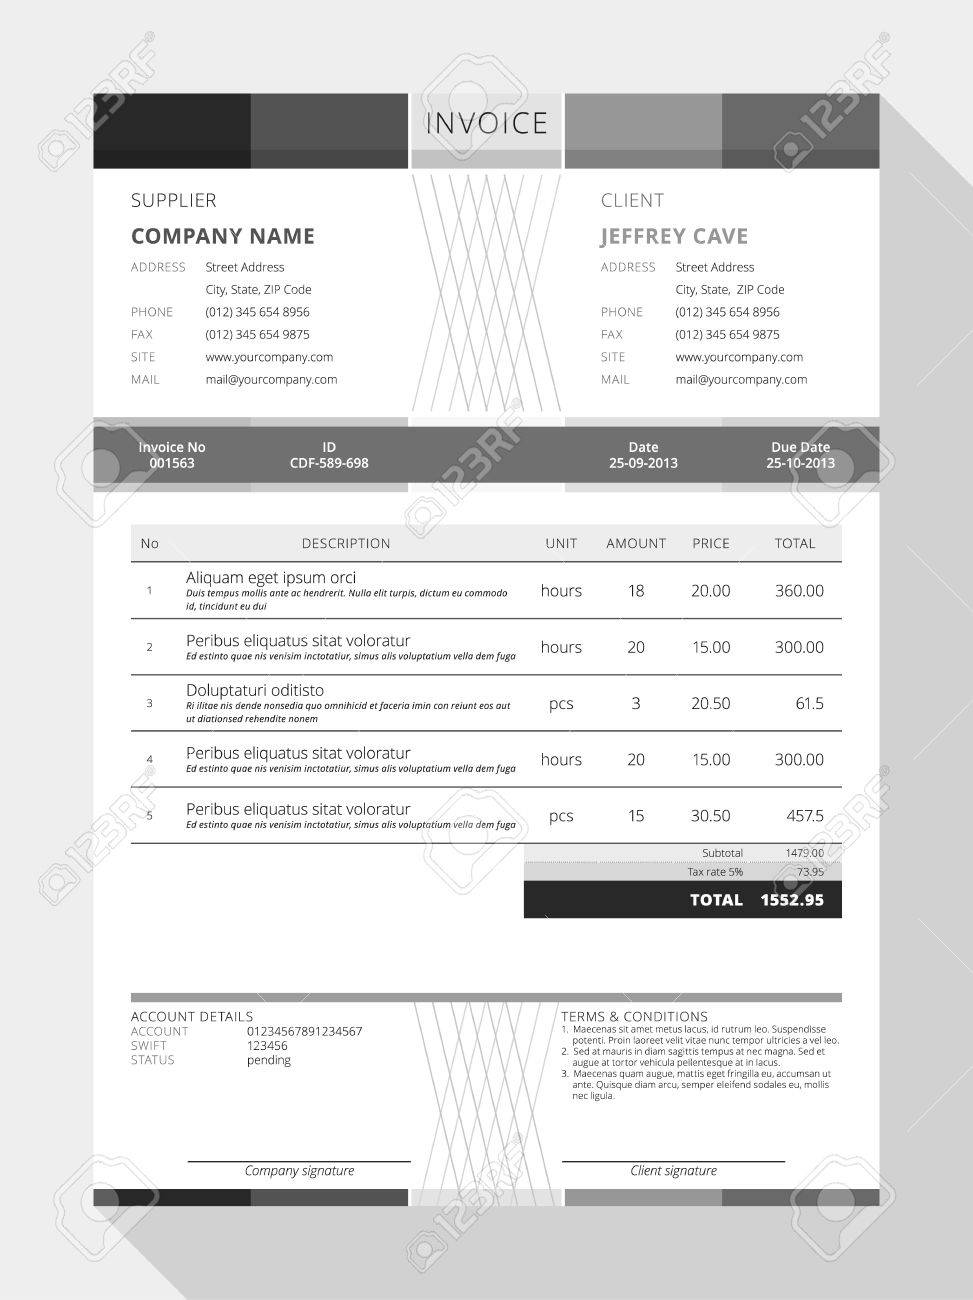 Howcanigettallerus  Winning Design An Invoice  Professional Graphic Design Invoice  With Luxury Vector Customizable Invoice Form Template Design Vector   Design An Invoice With Easy On The Eye Best Way To Keep Track Of Receipts Also Sample Receipt For Land Purchase In Addition Saving Receipts And Renters Receipt As Well As Receipt Clipboard Additionally Receipt Information From Happytomco With Howcanigettallerus  Luxury Design An Invoice  Professional Graphic Design Invoice  With Easy On The Eye Vector Customizable Invoice Form Template Design Vector   Design An Invoice And Winning Best Way To Keep Track Of Receipts Also Sample Receipt For Land Purchase In Addition Saving Receipts From Happytomco